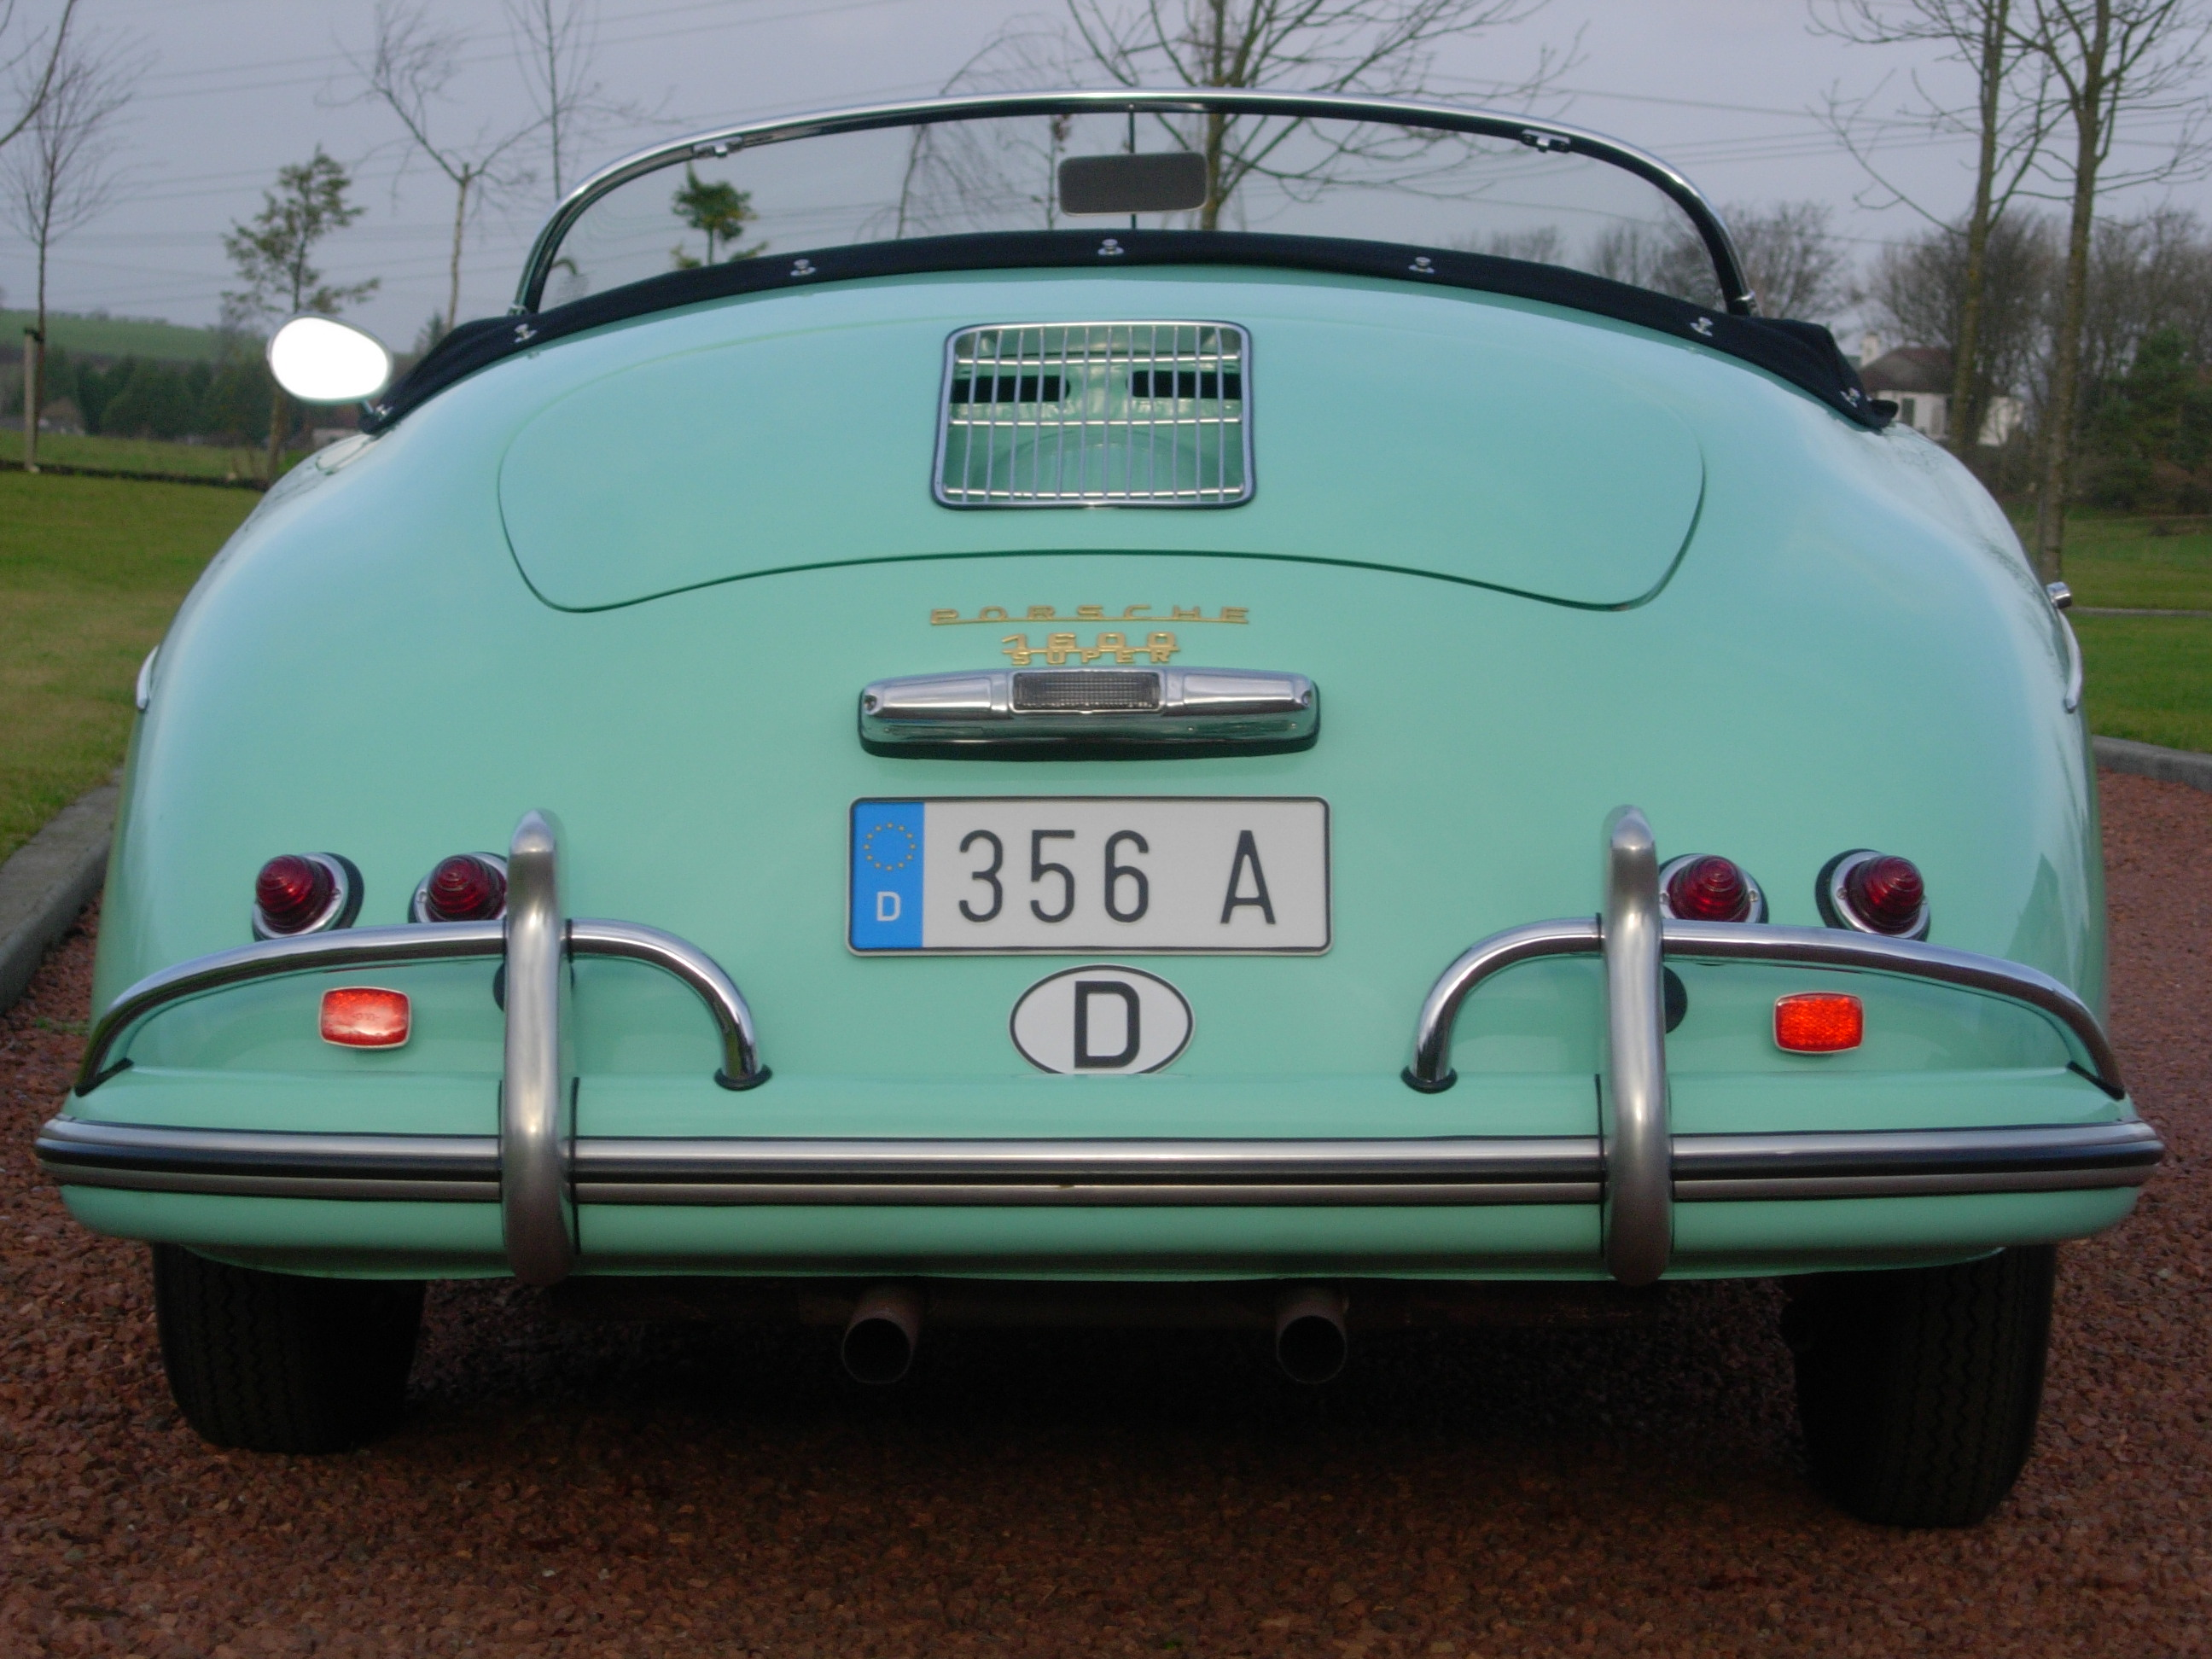 2SPEEDSTER GREEN 356A 035